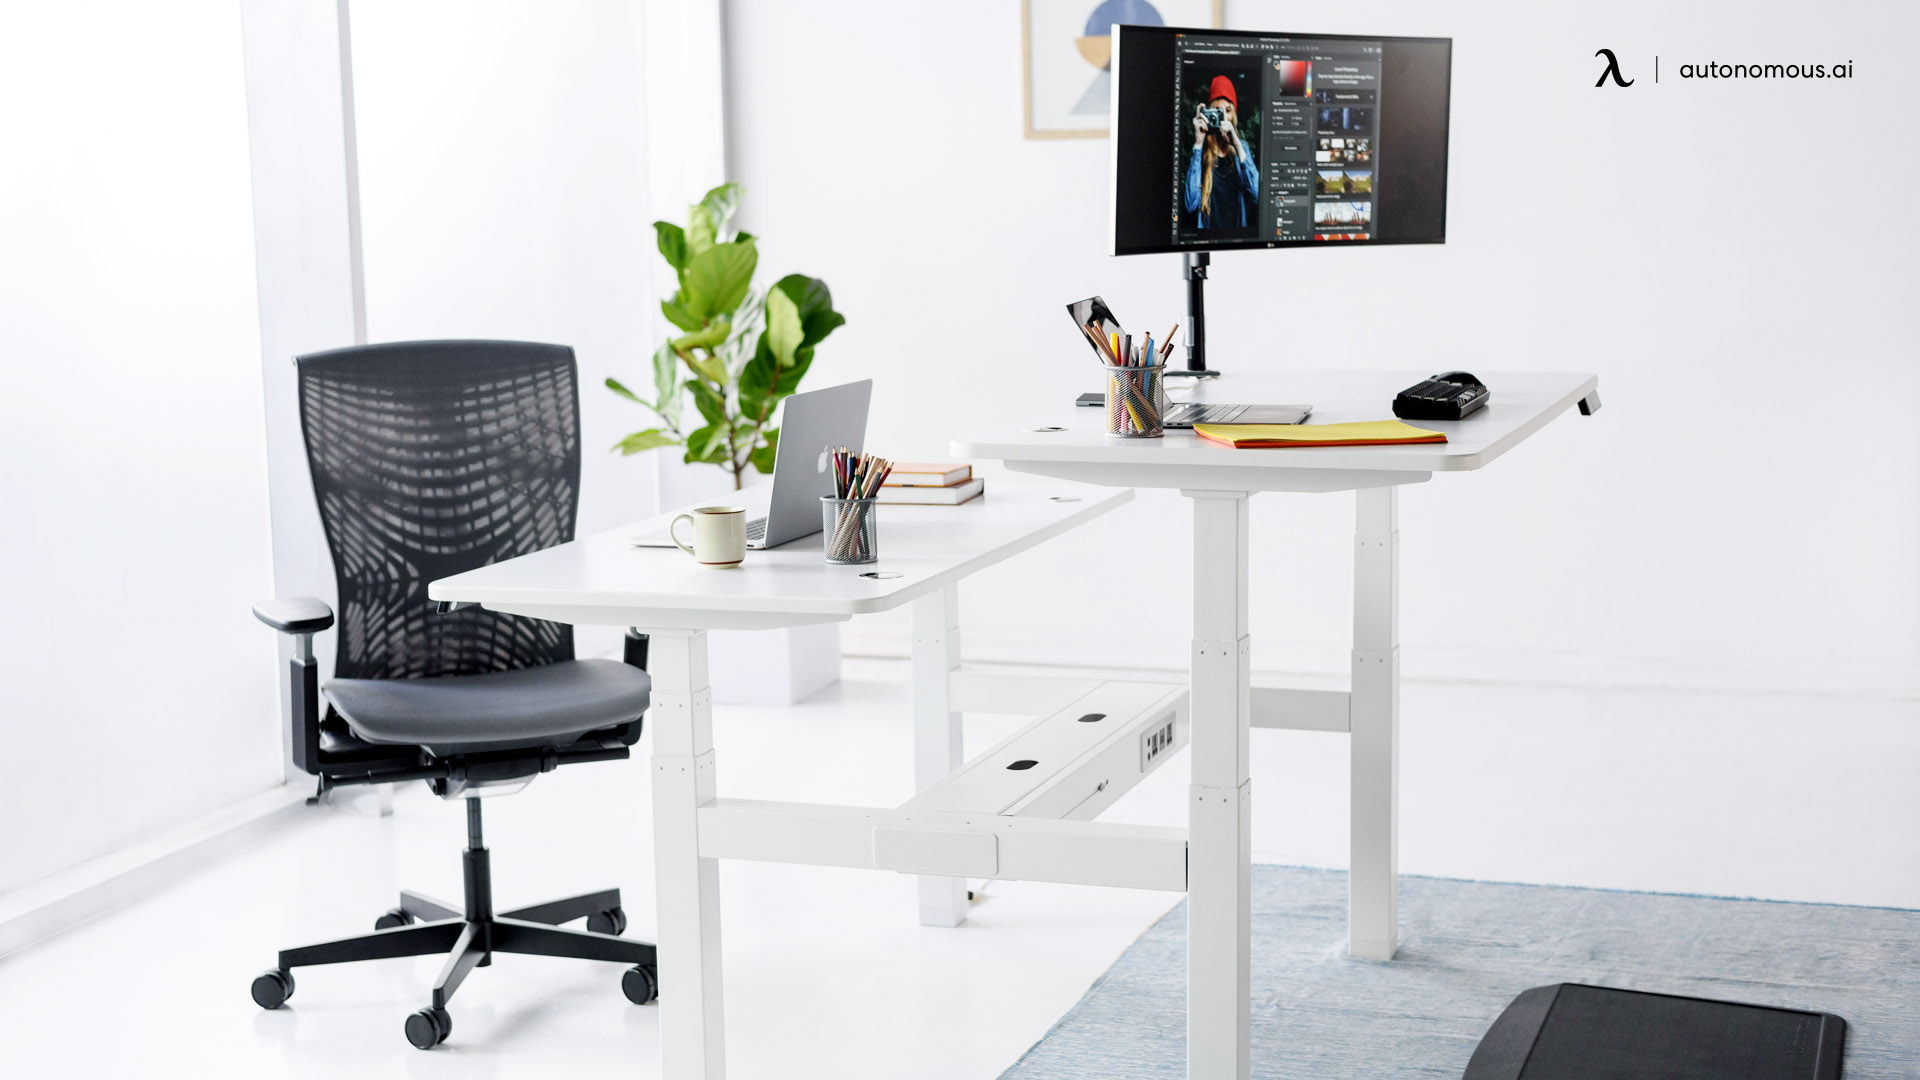 Should the office keep up with the modern furniture trend?